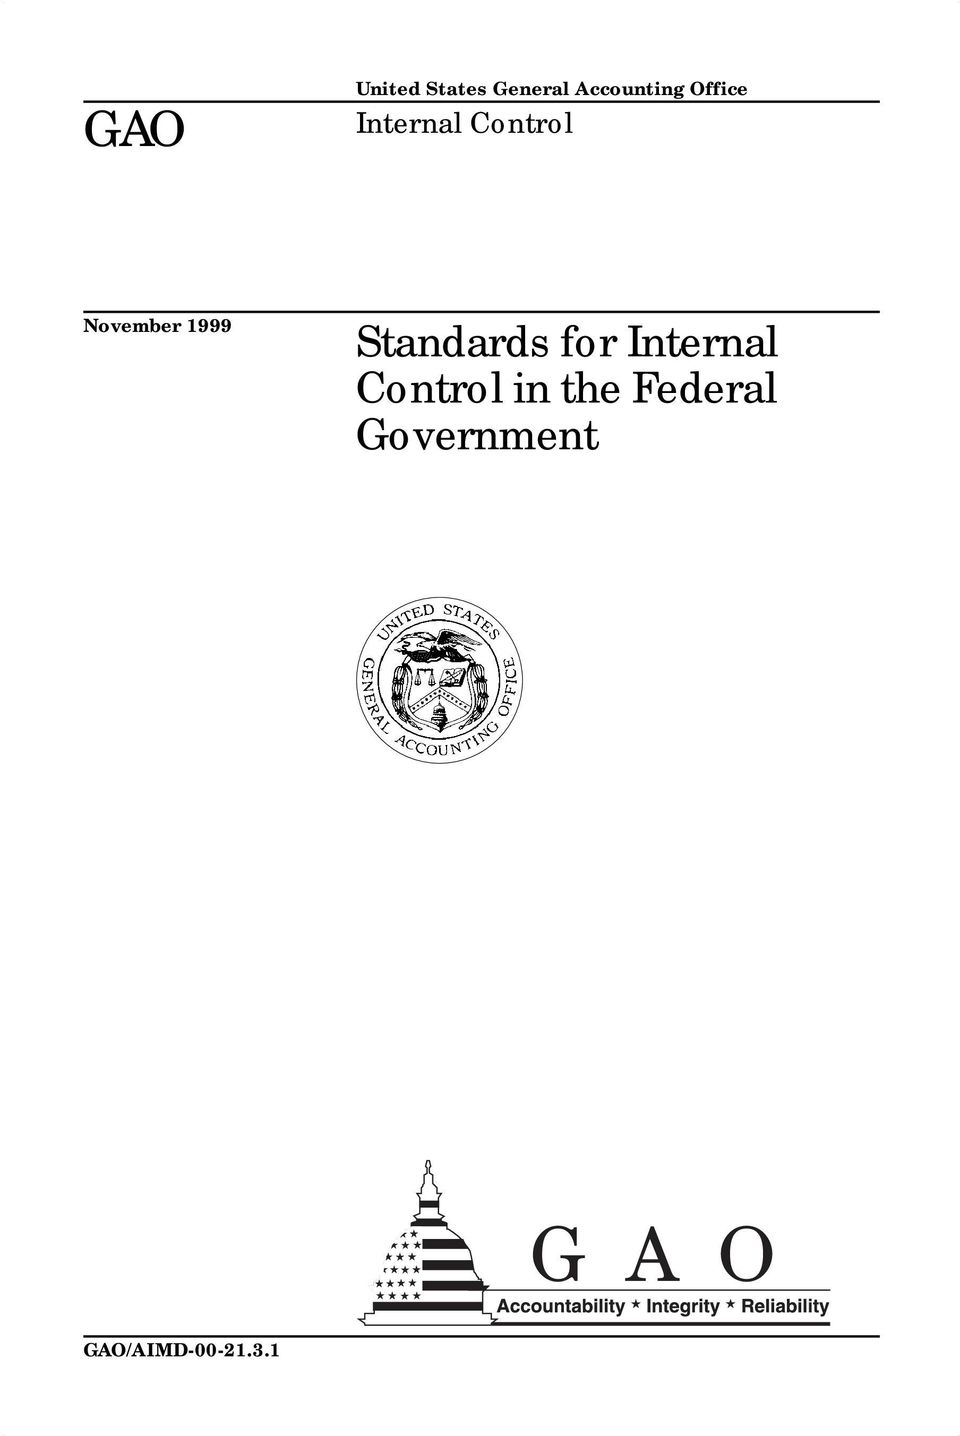 Standards for Internal Control in the